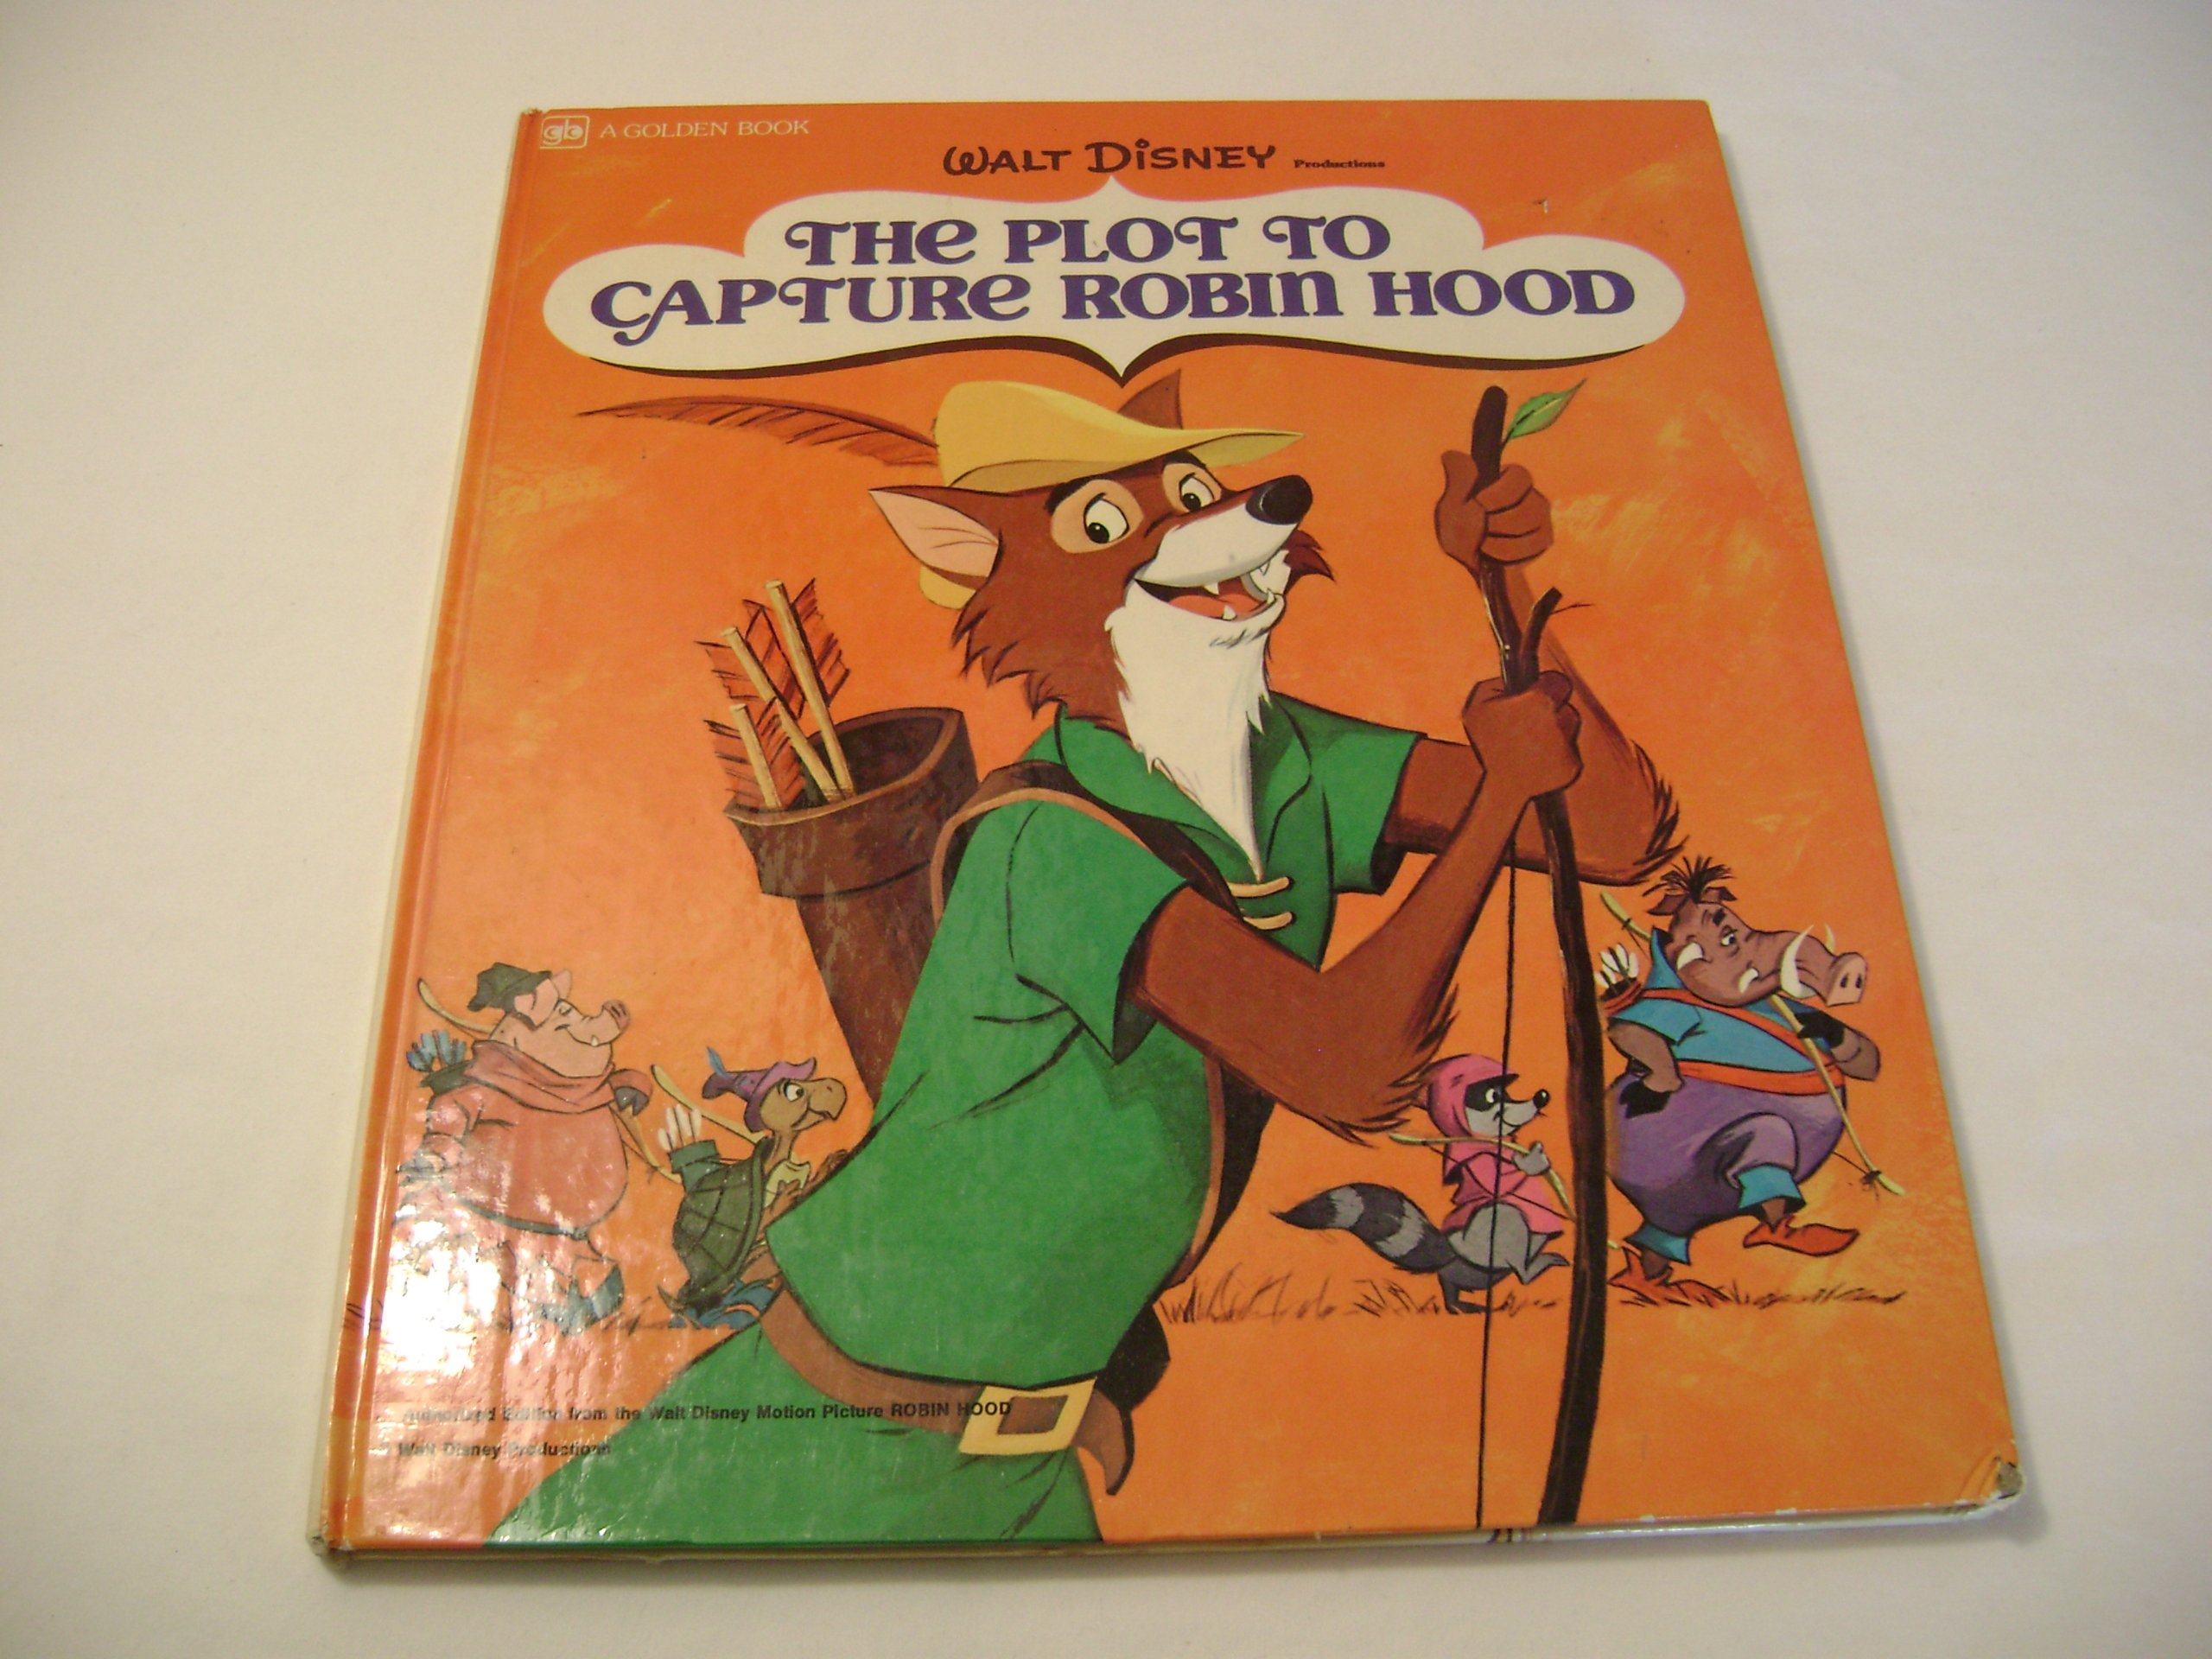 The Plot To Capture Robin Hood From The Walt Disney Motion Picture